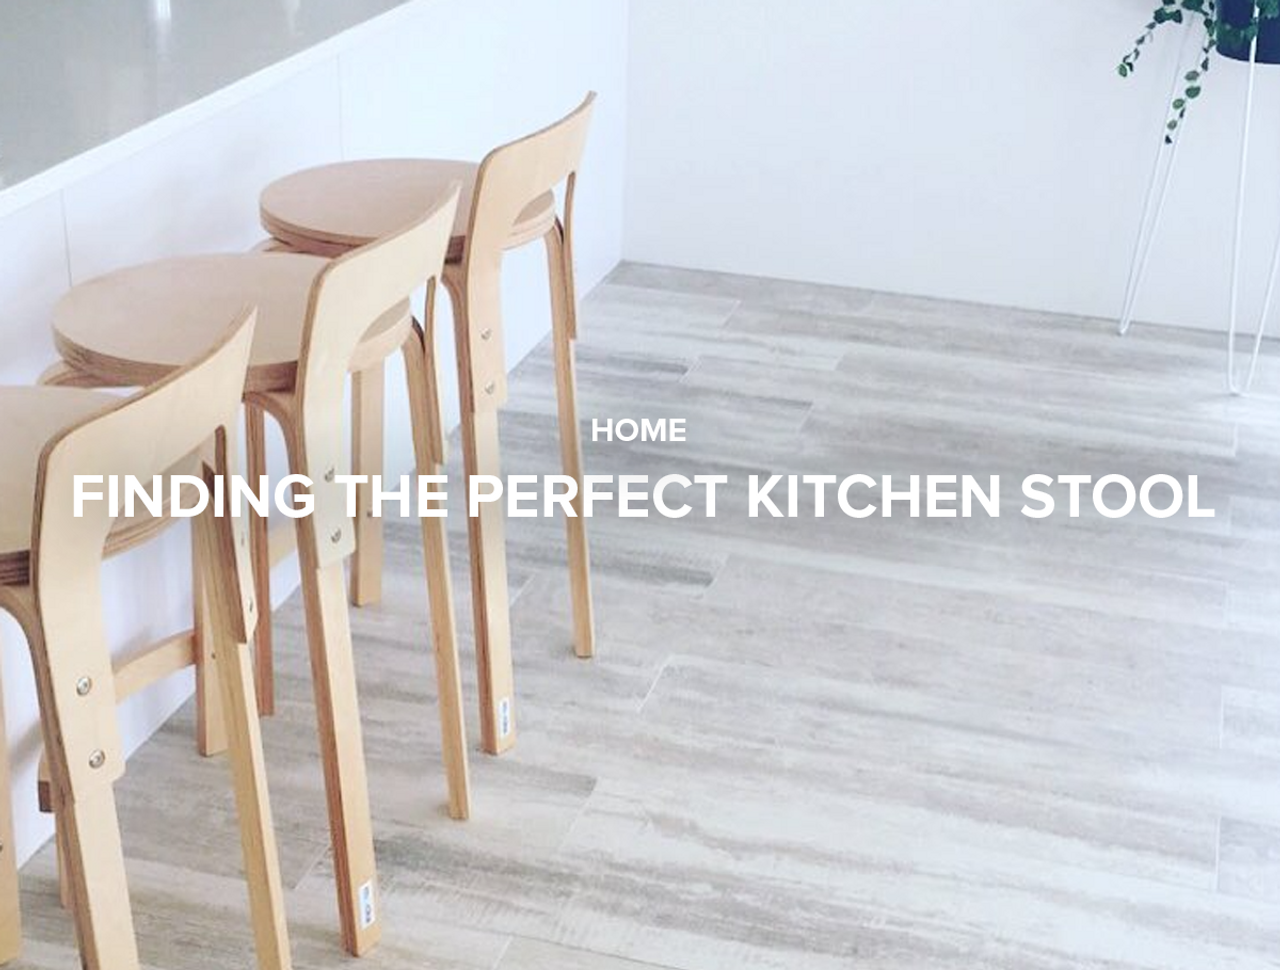 Finding the Perfect Kitchen Stool